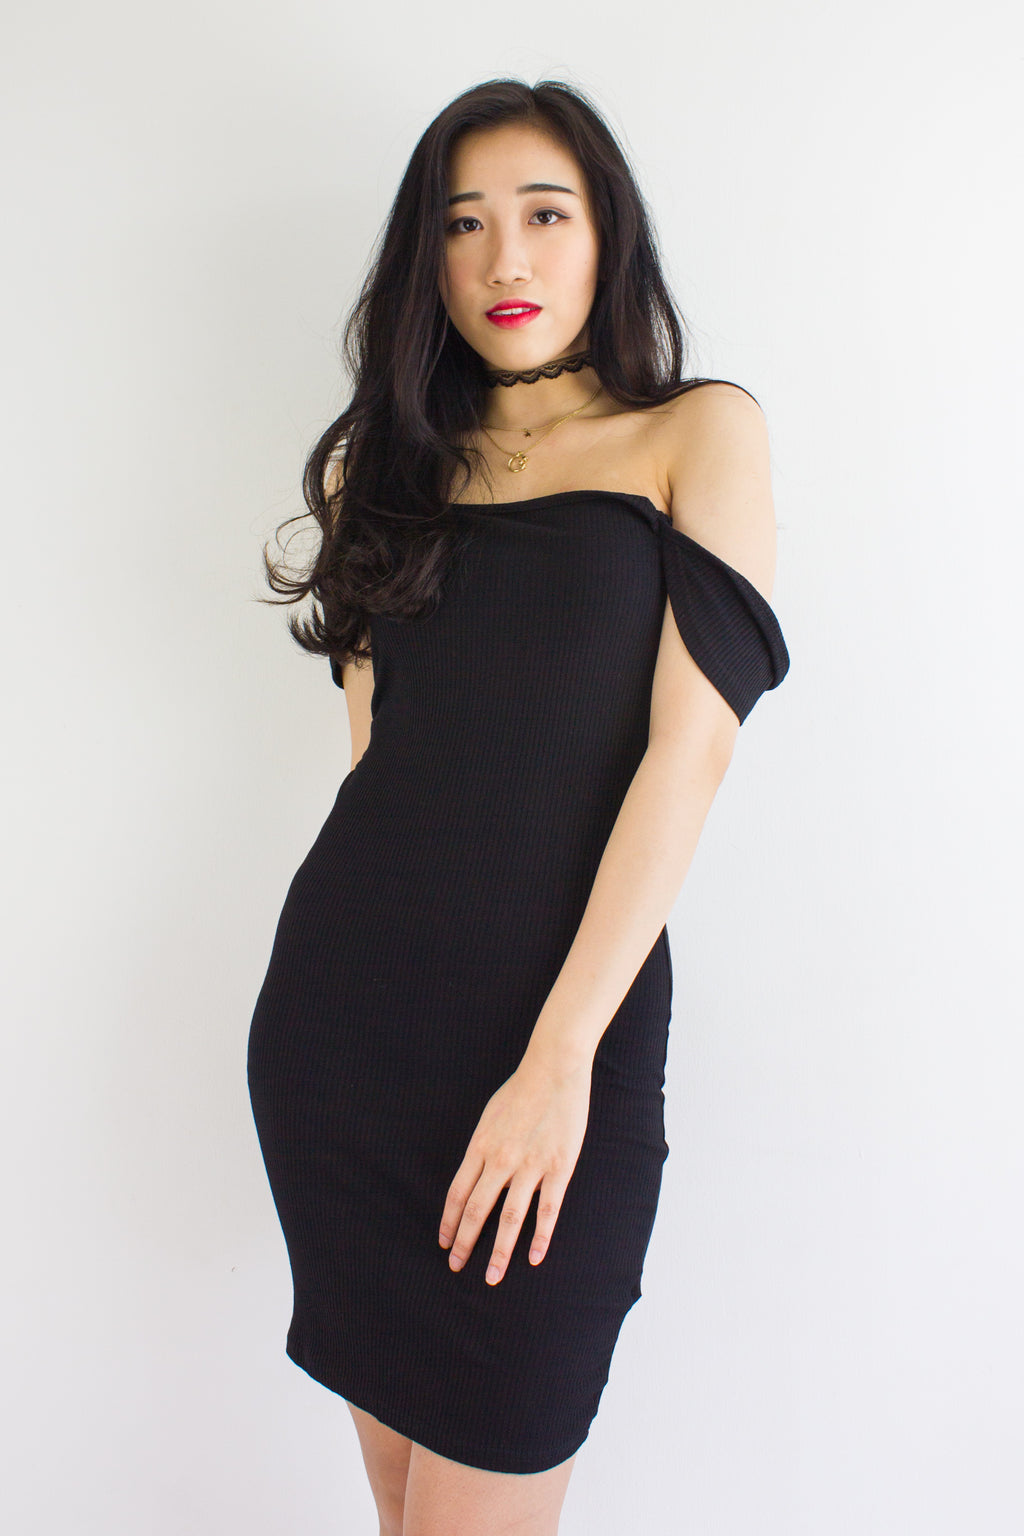 On And Off Shoulder Mini Dress in Black - DRESSES - Peep Boutique